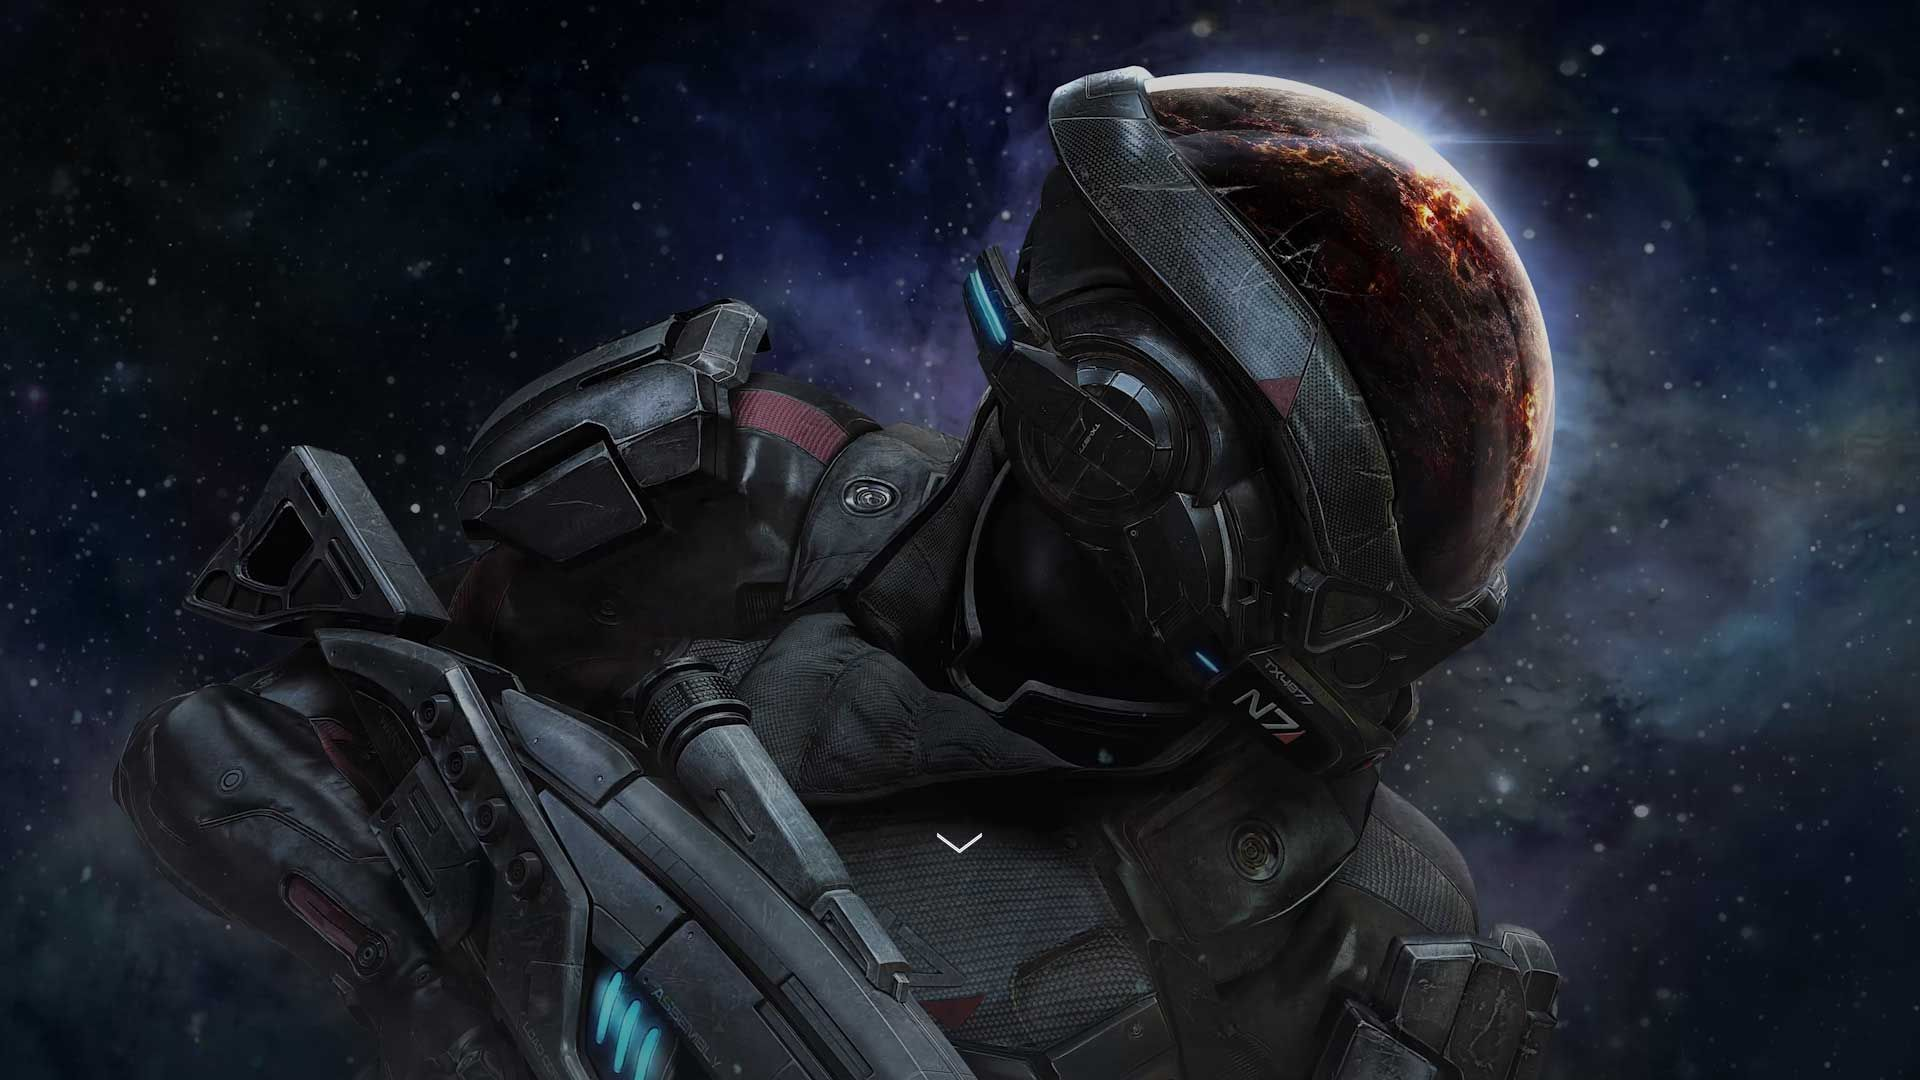 Mass Effectandromeda Mass Effect Andromeda Buyer S Guide Editions Collectibles Pre